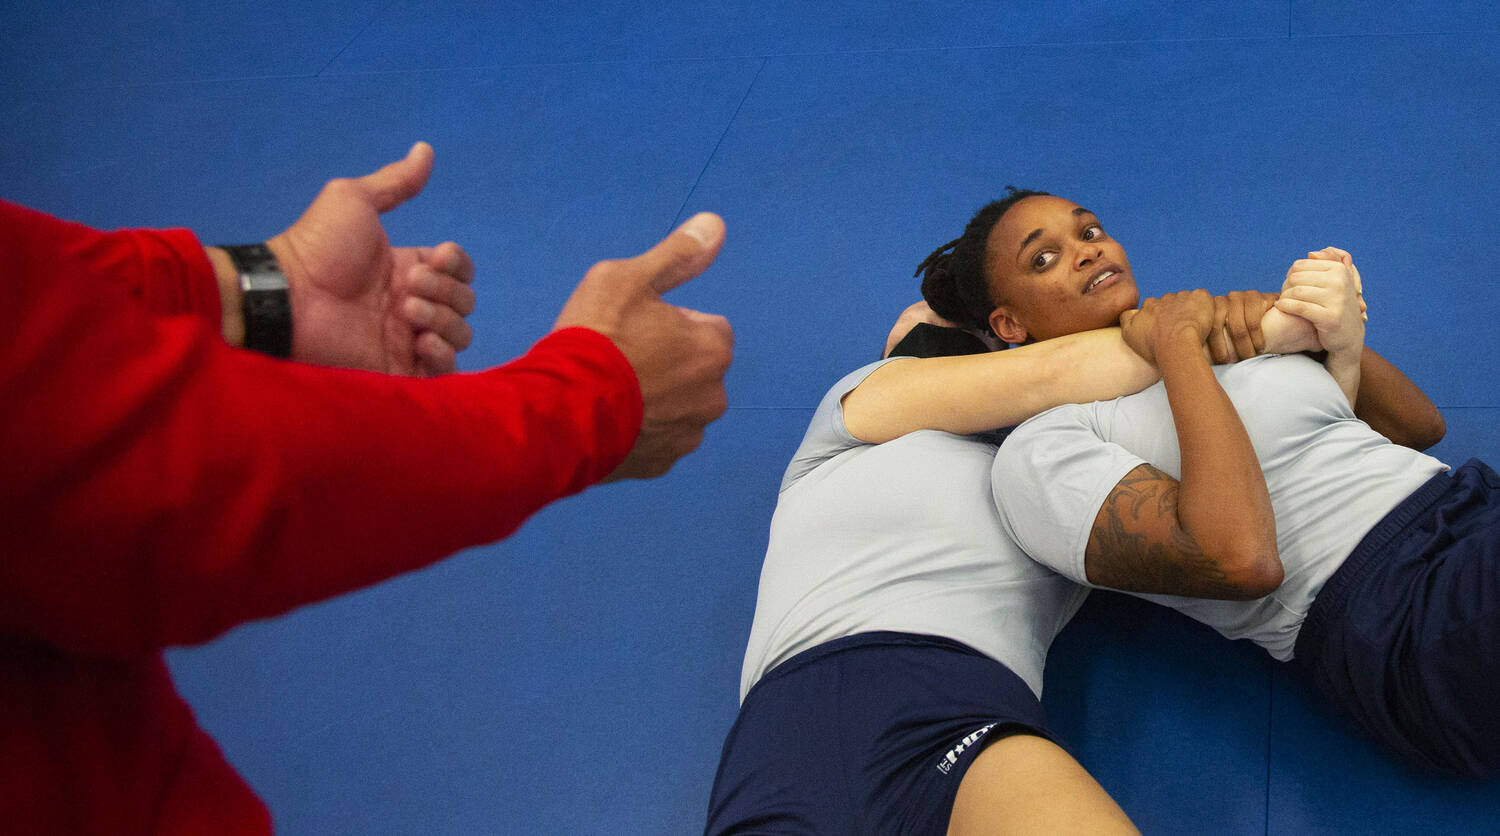 One of the woman recruits, held on the ground in choke hold by another, looks at the instructor, standing above, showing with his hands how she should respond.